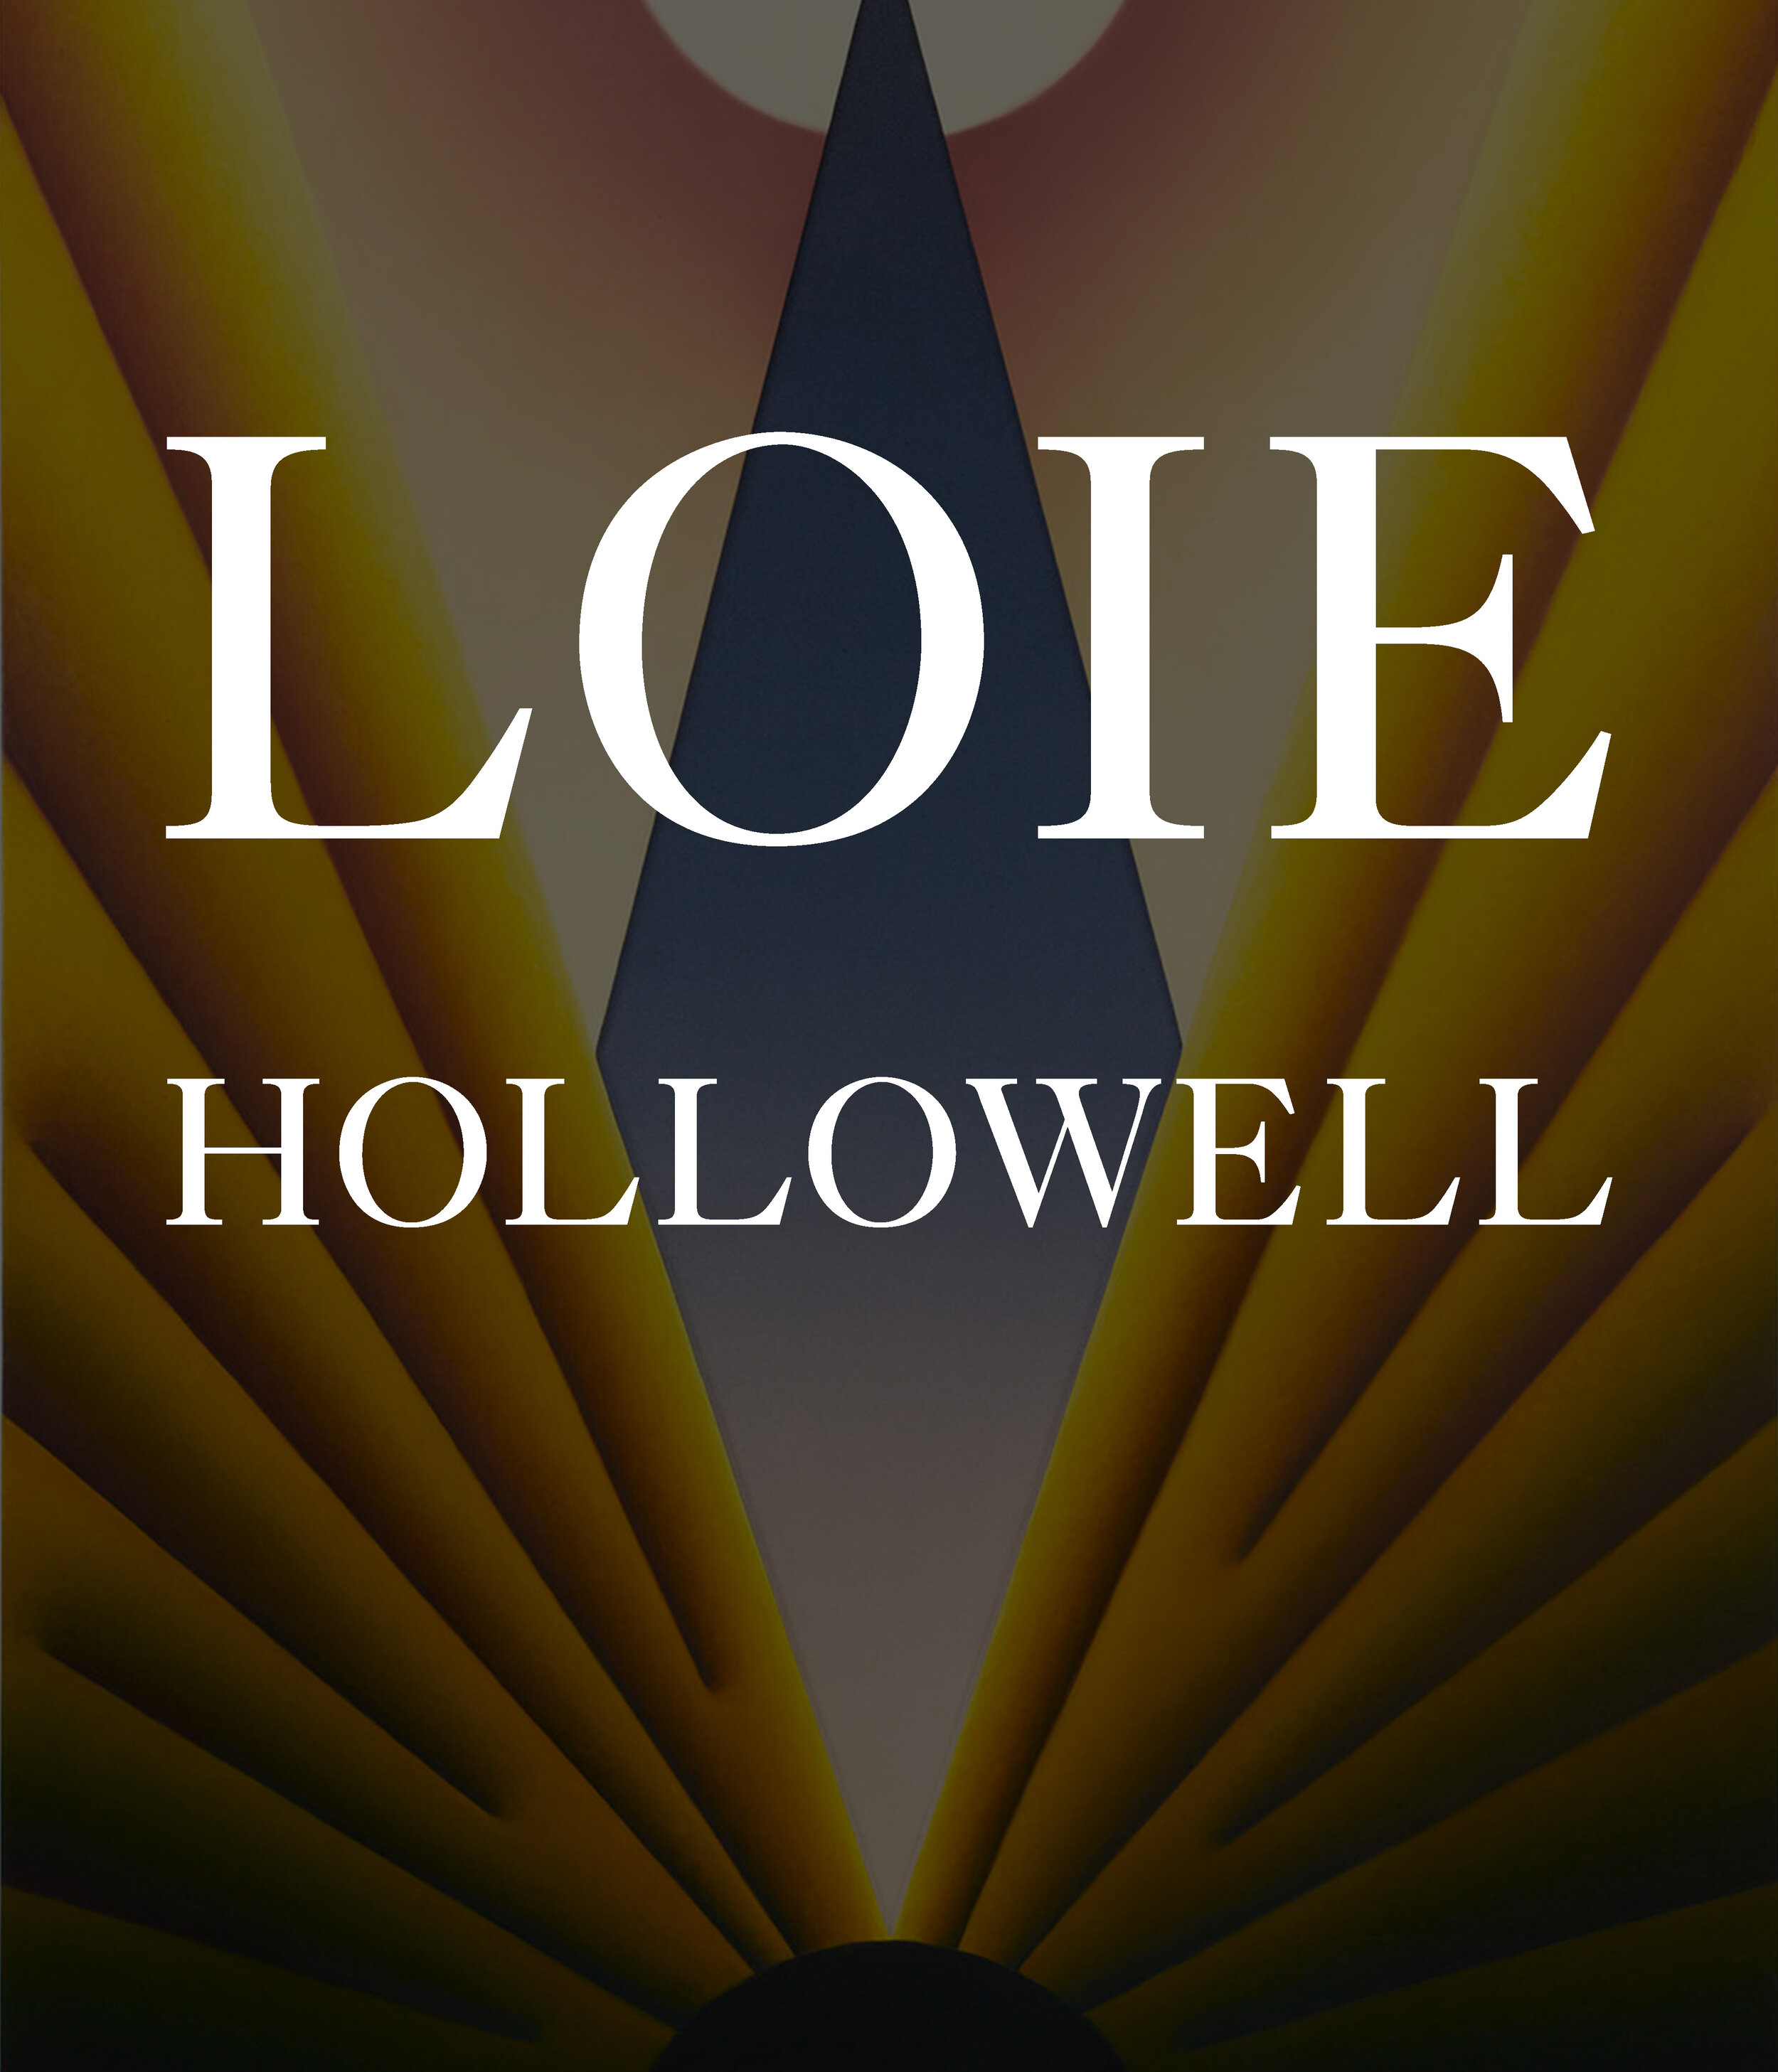 190919_LoieHollowell_MASTER_SQUARE_PREVIEW_QA_without.jpg